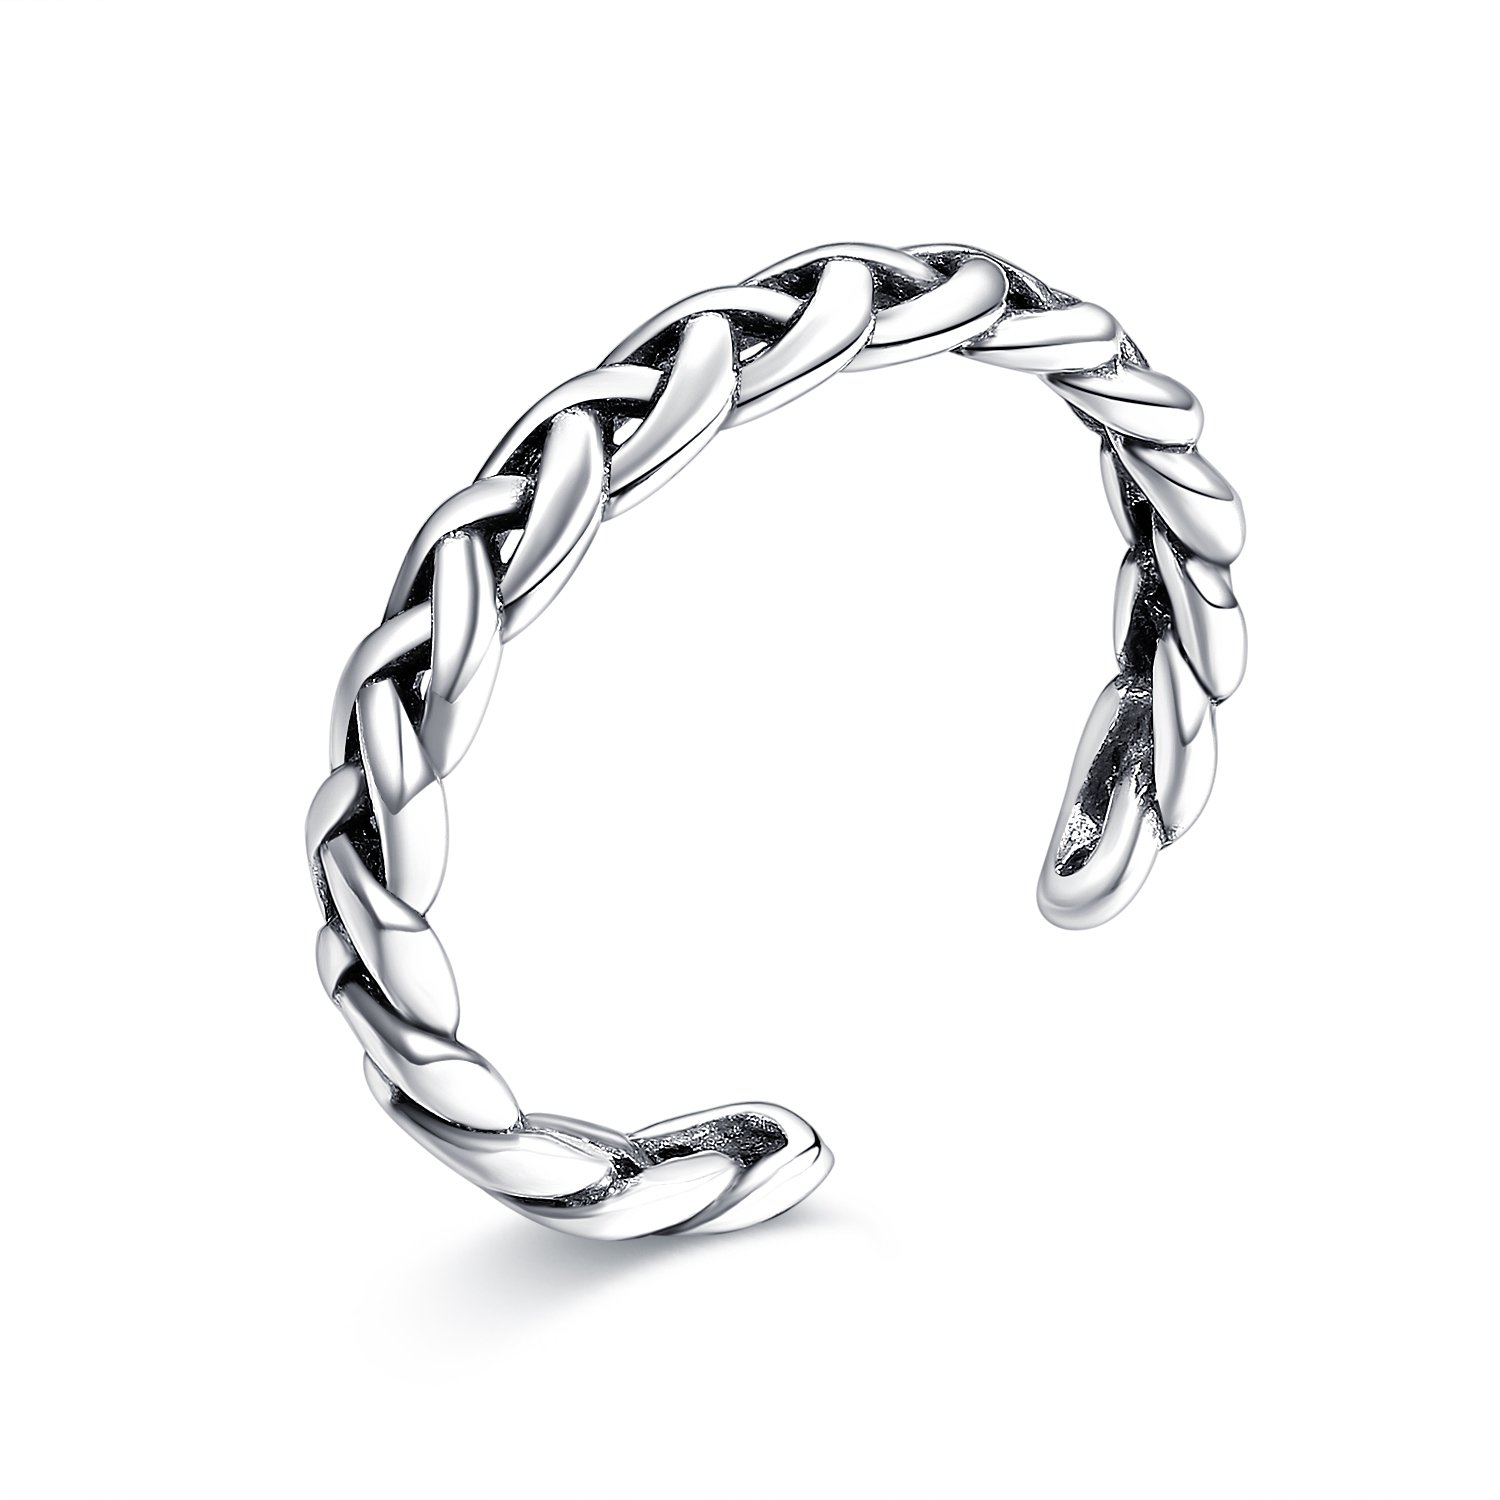 LicLiz Sterling Silver Braided Celtic Knot Adjustable Open Band Ring, Toe Ring for Girls Width 3.3mm